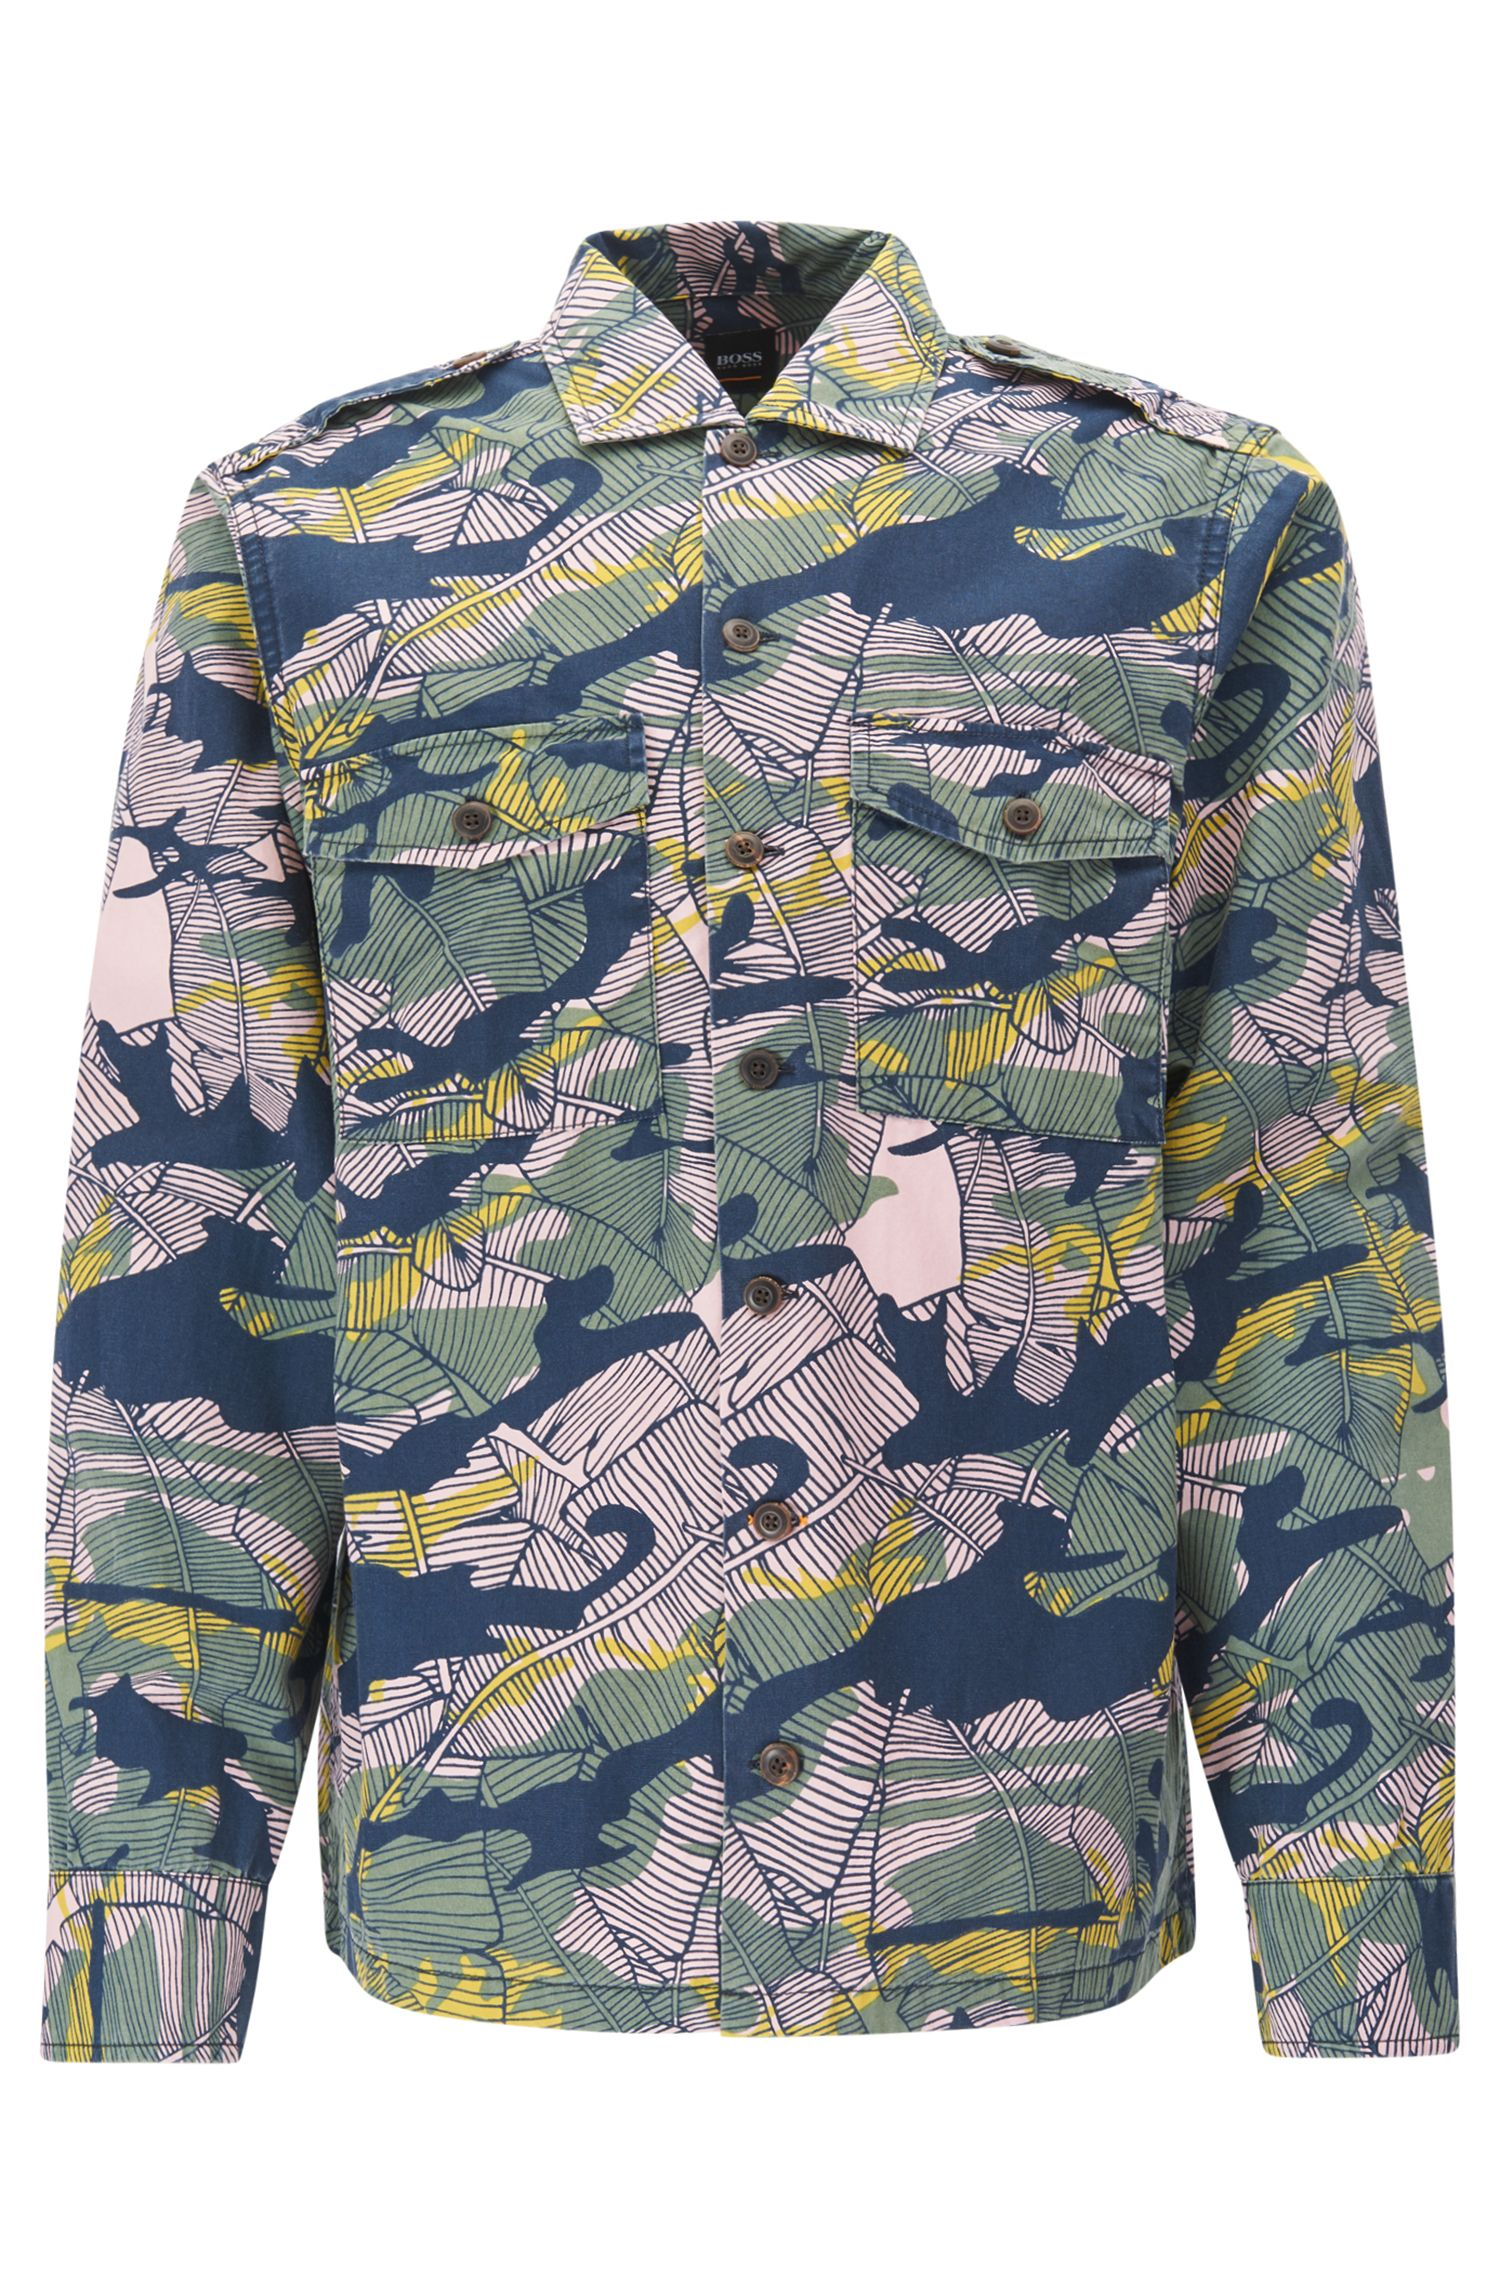 Relaxed-fit cotton shirt in Caribbean-inspired camouflage print